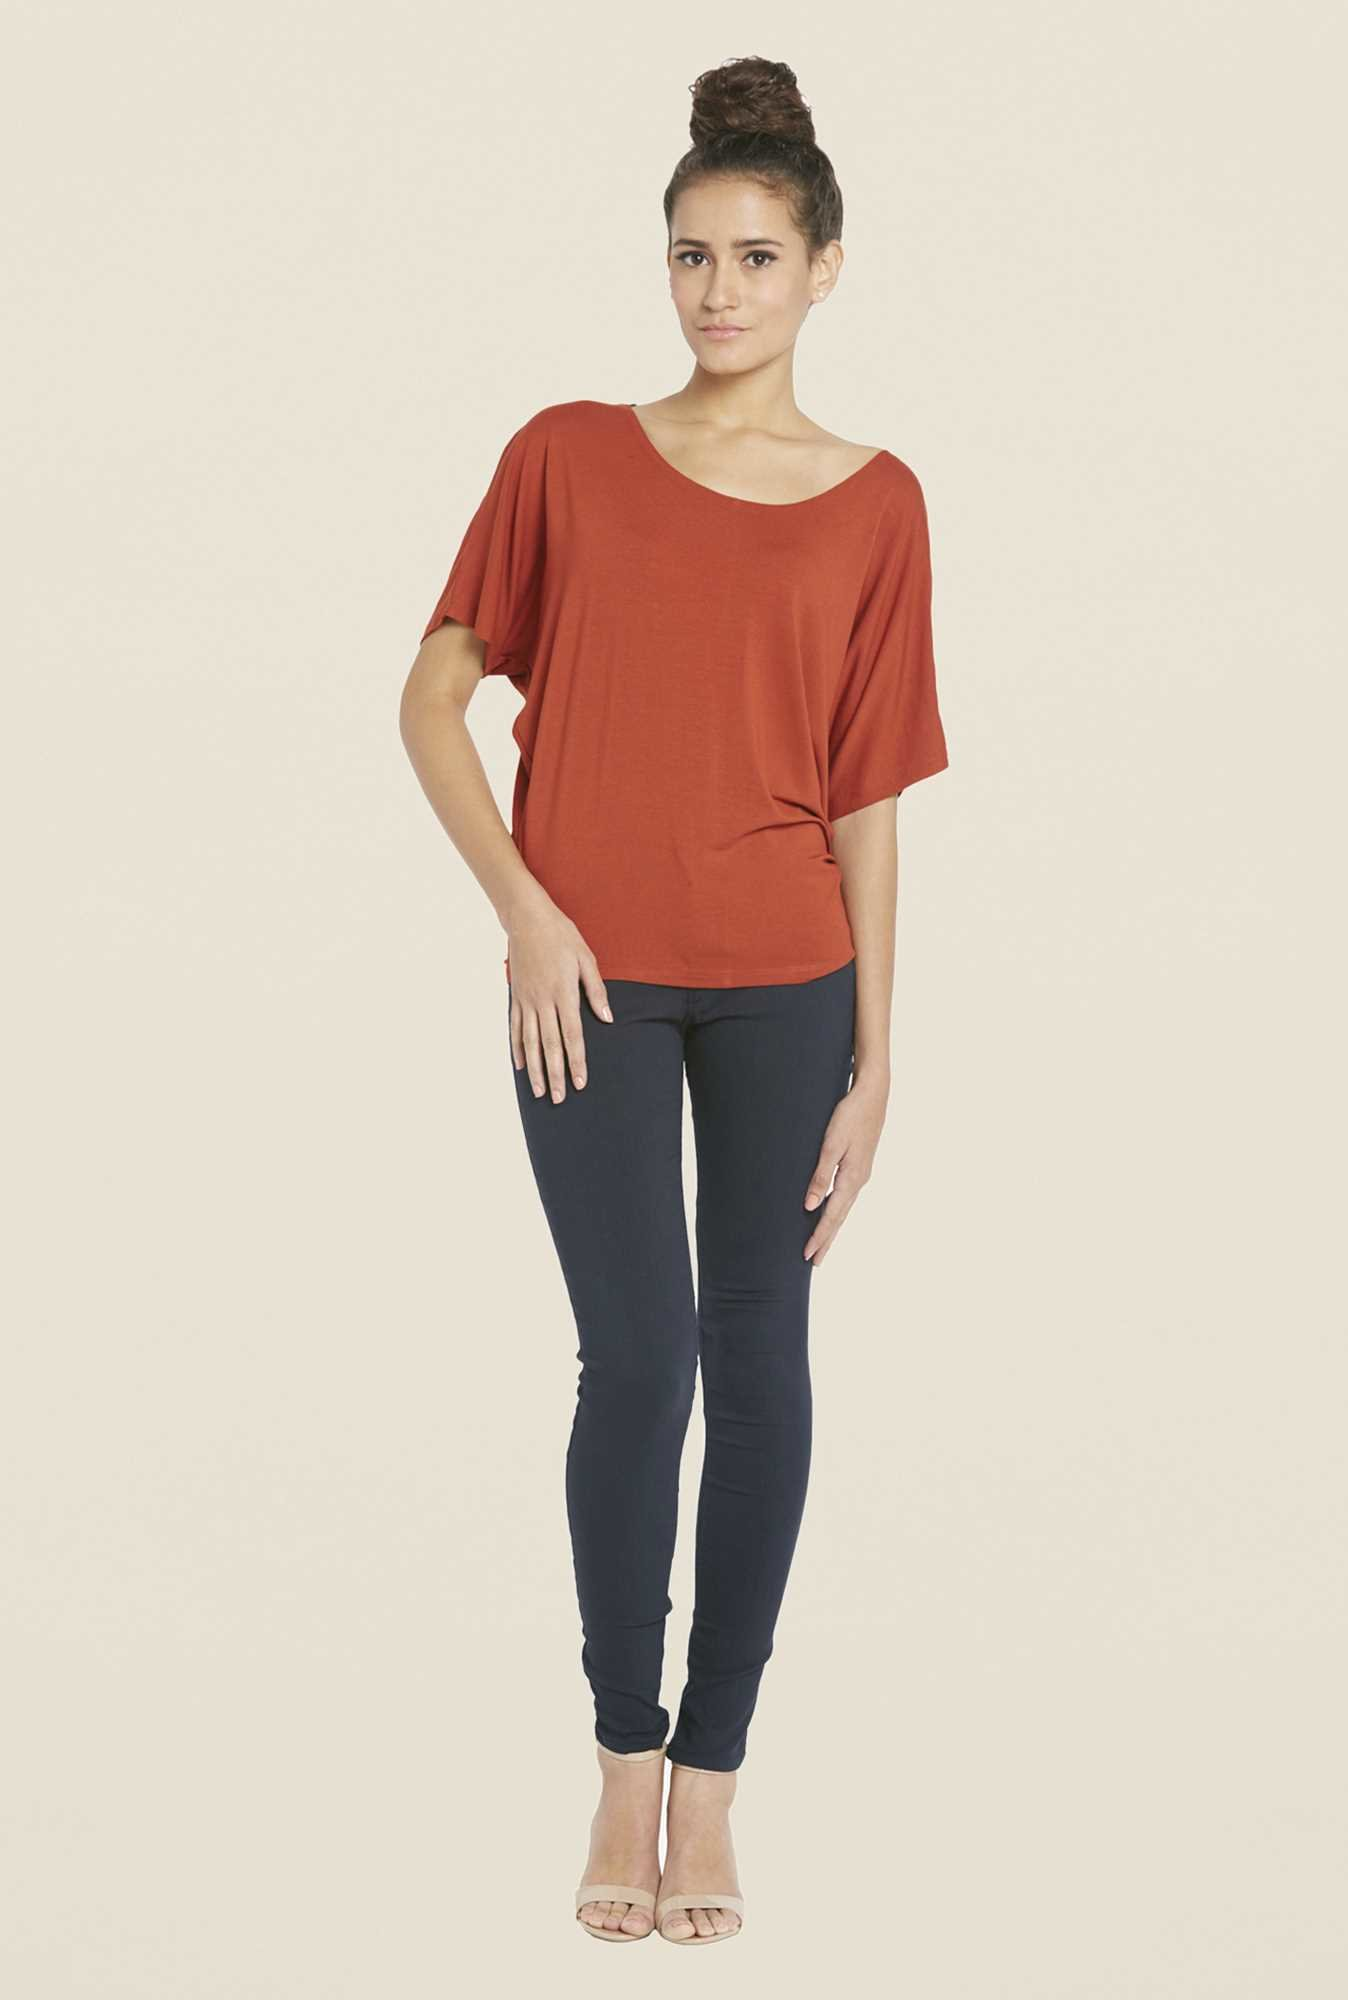 Globus Red Solid Top